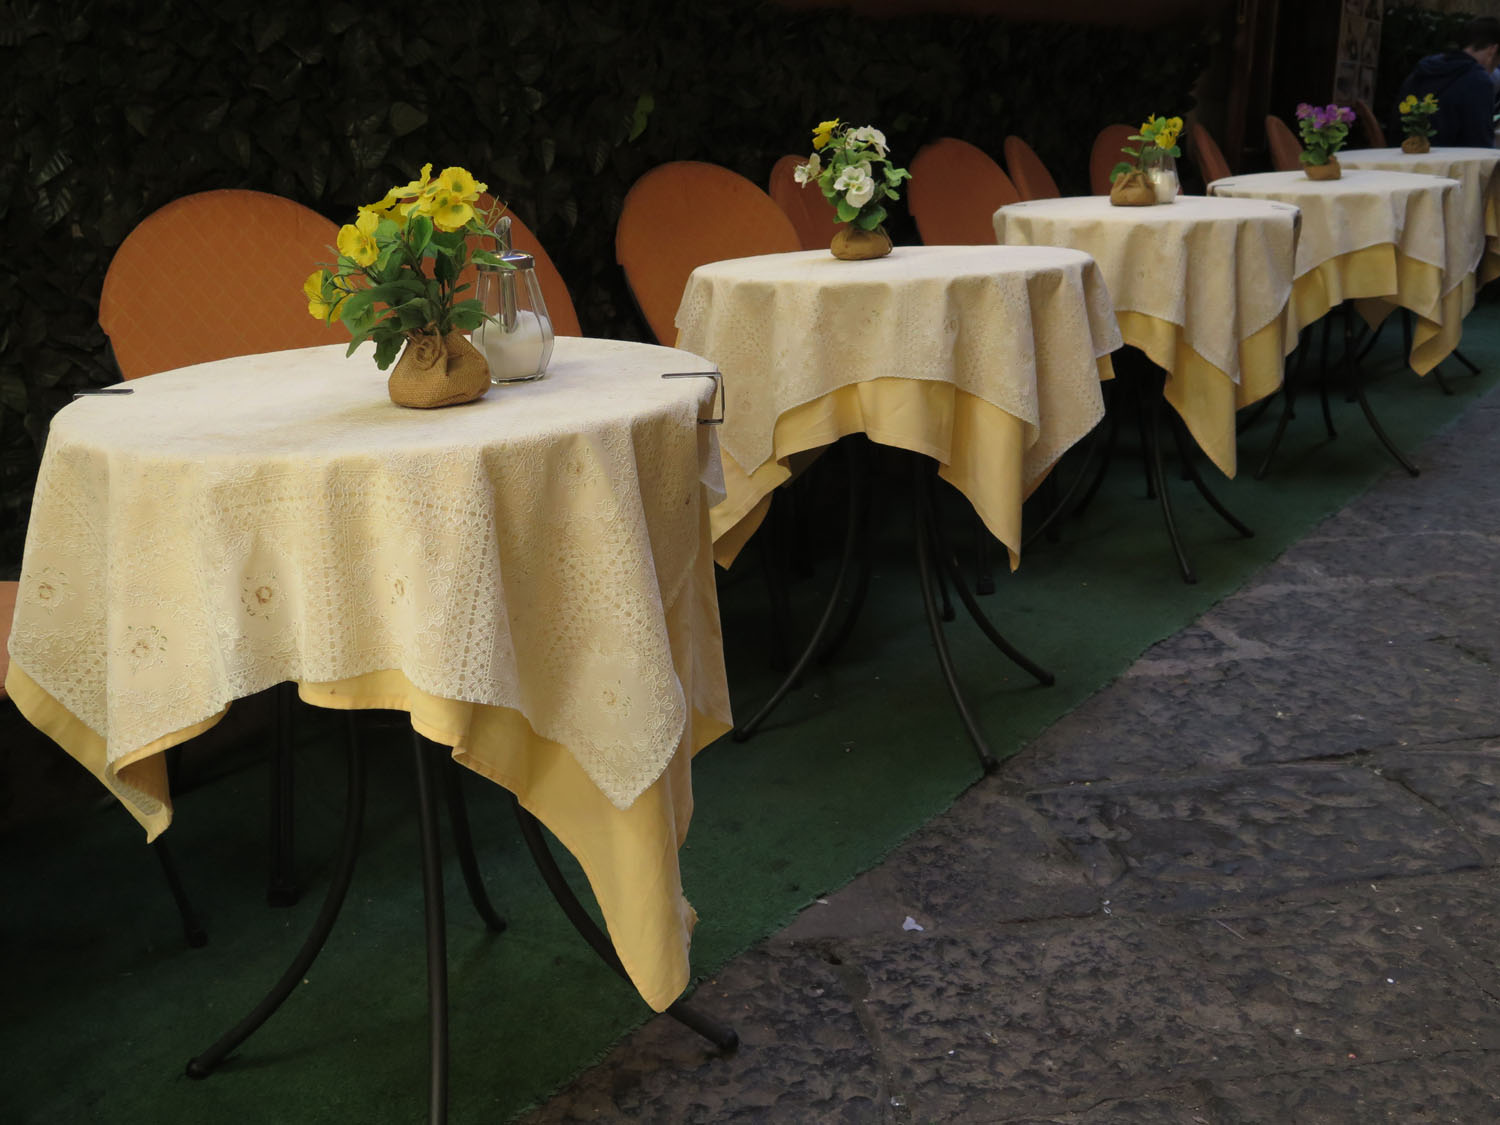 Italy-Sorrento-Tables